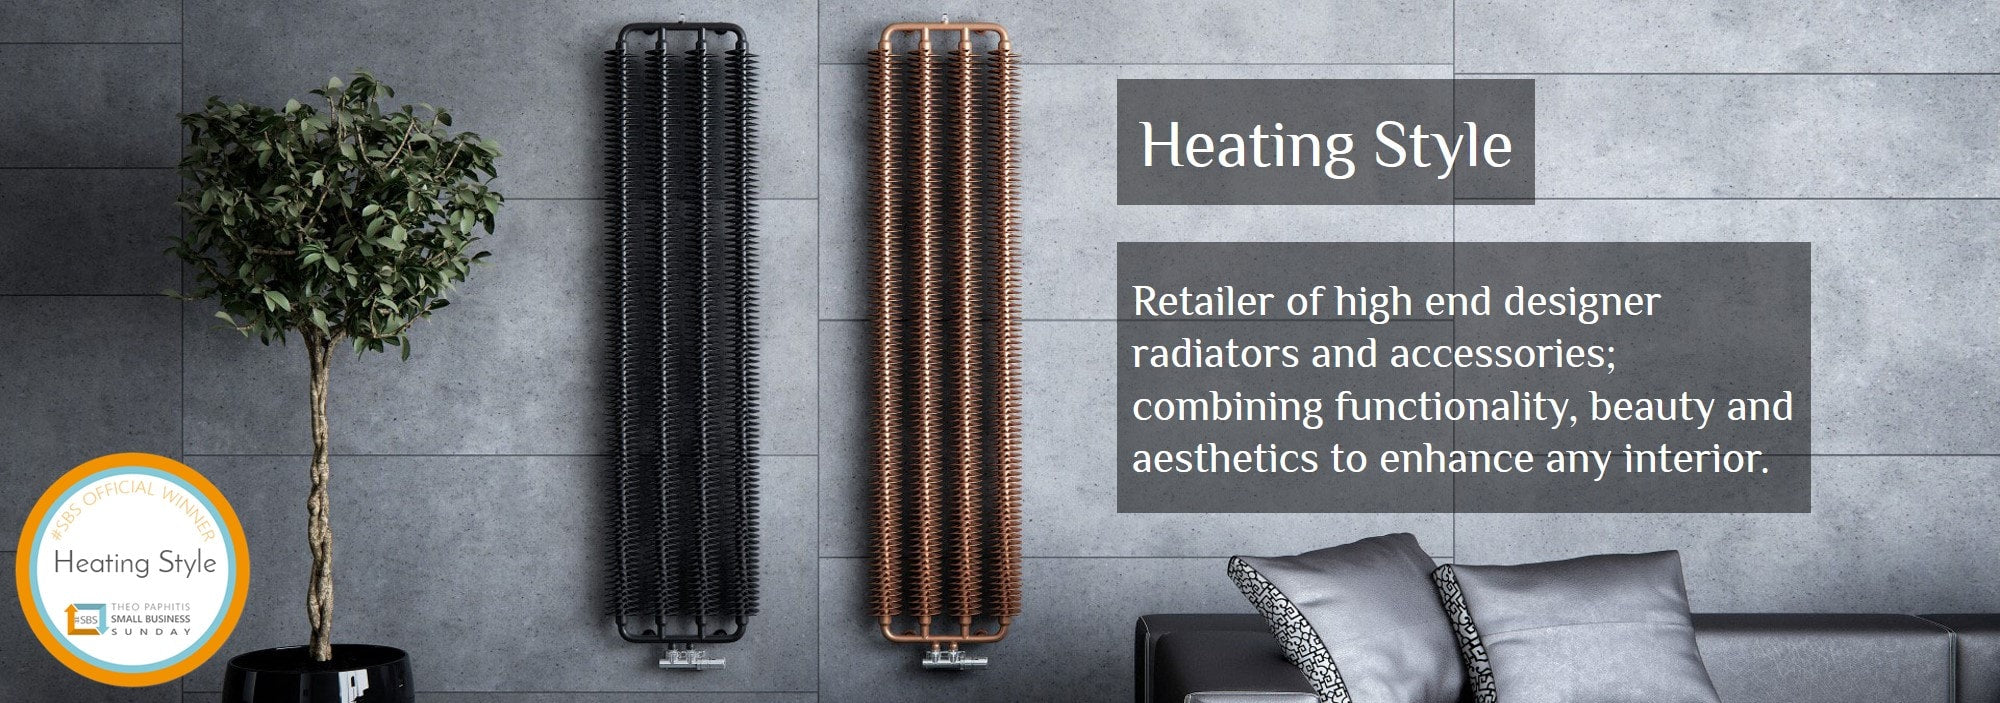 Heating style about us terma radiators uk